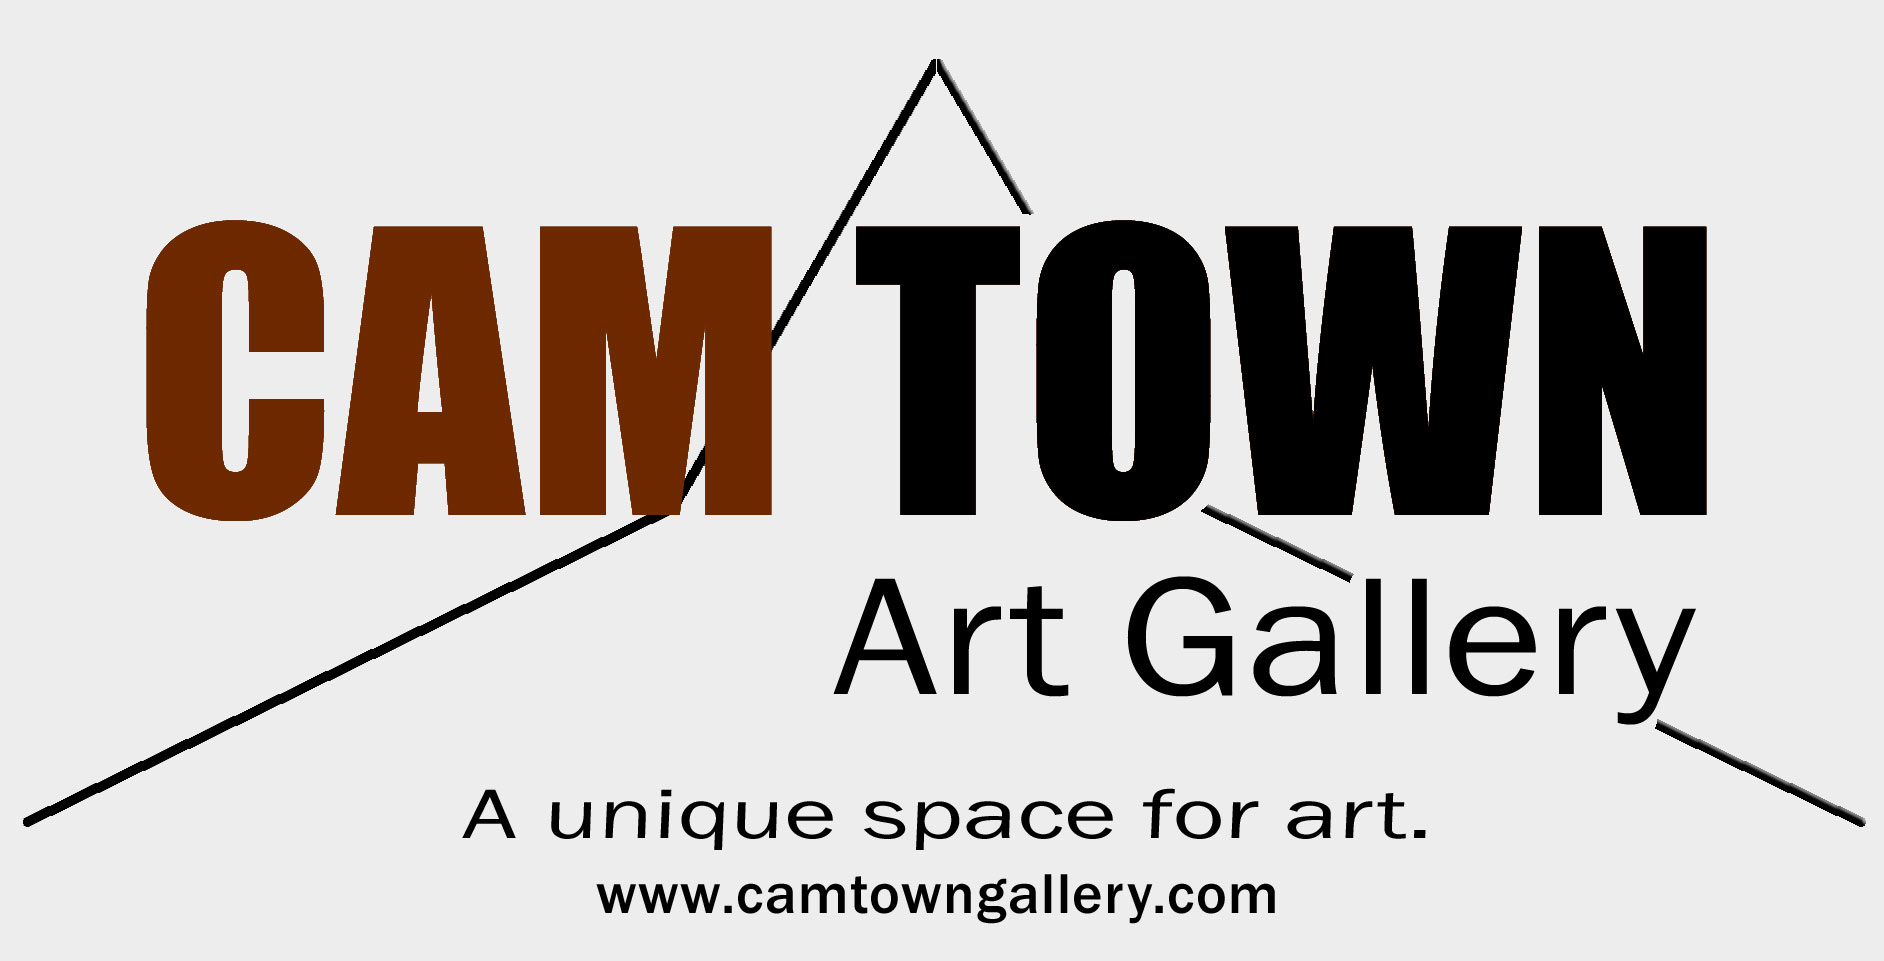 CAM TOWN GALLERY